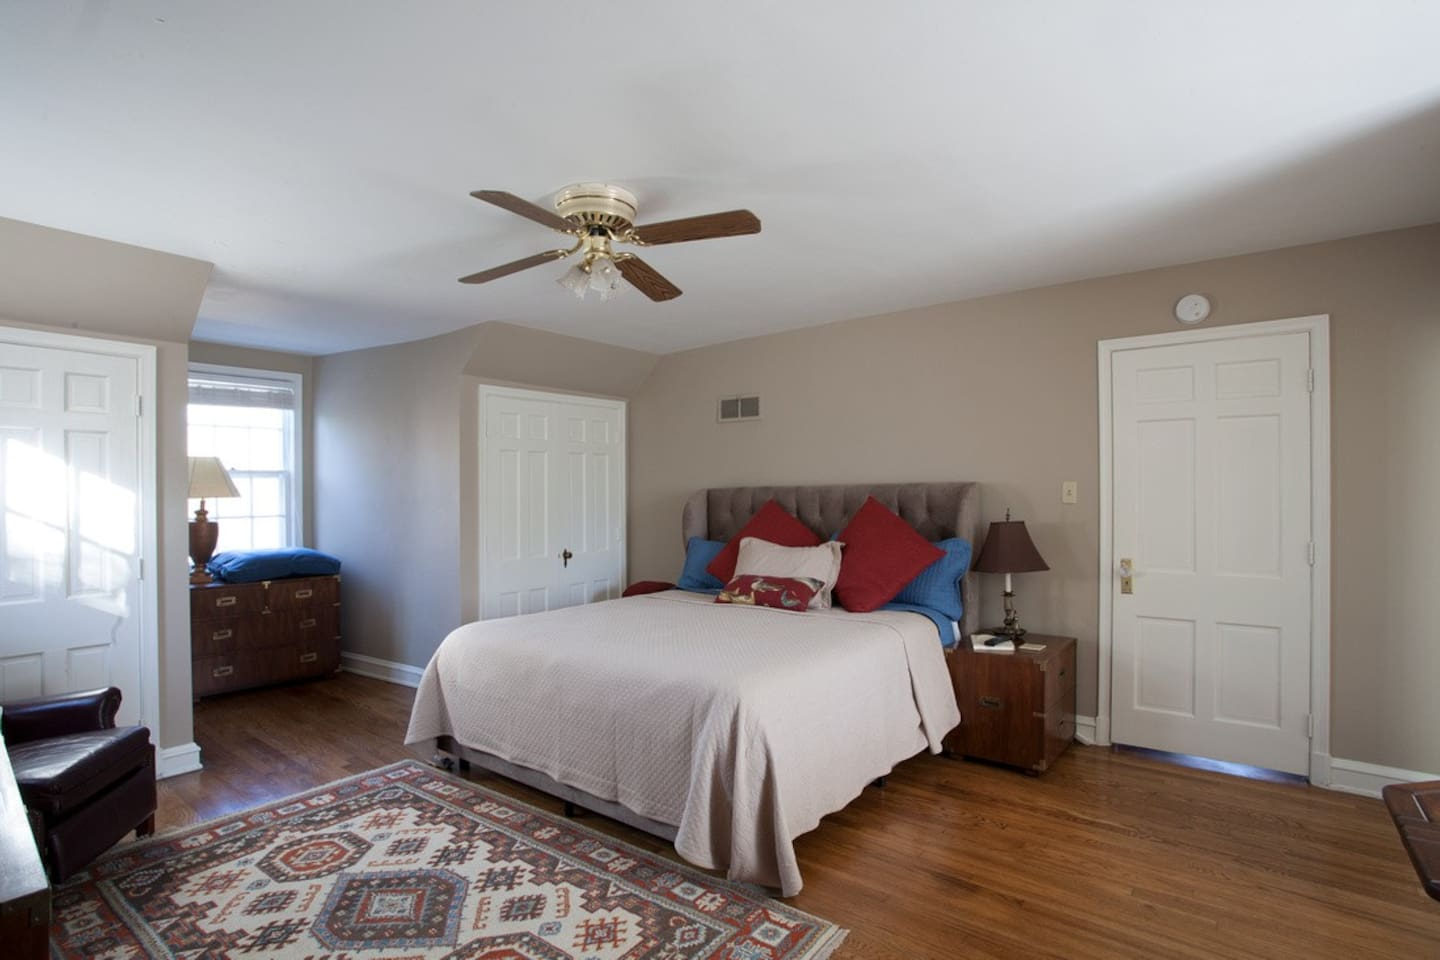 Book The Pub & Play Suite with it's huge super comfy California king bed.